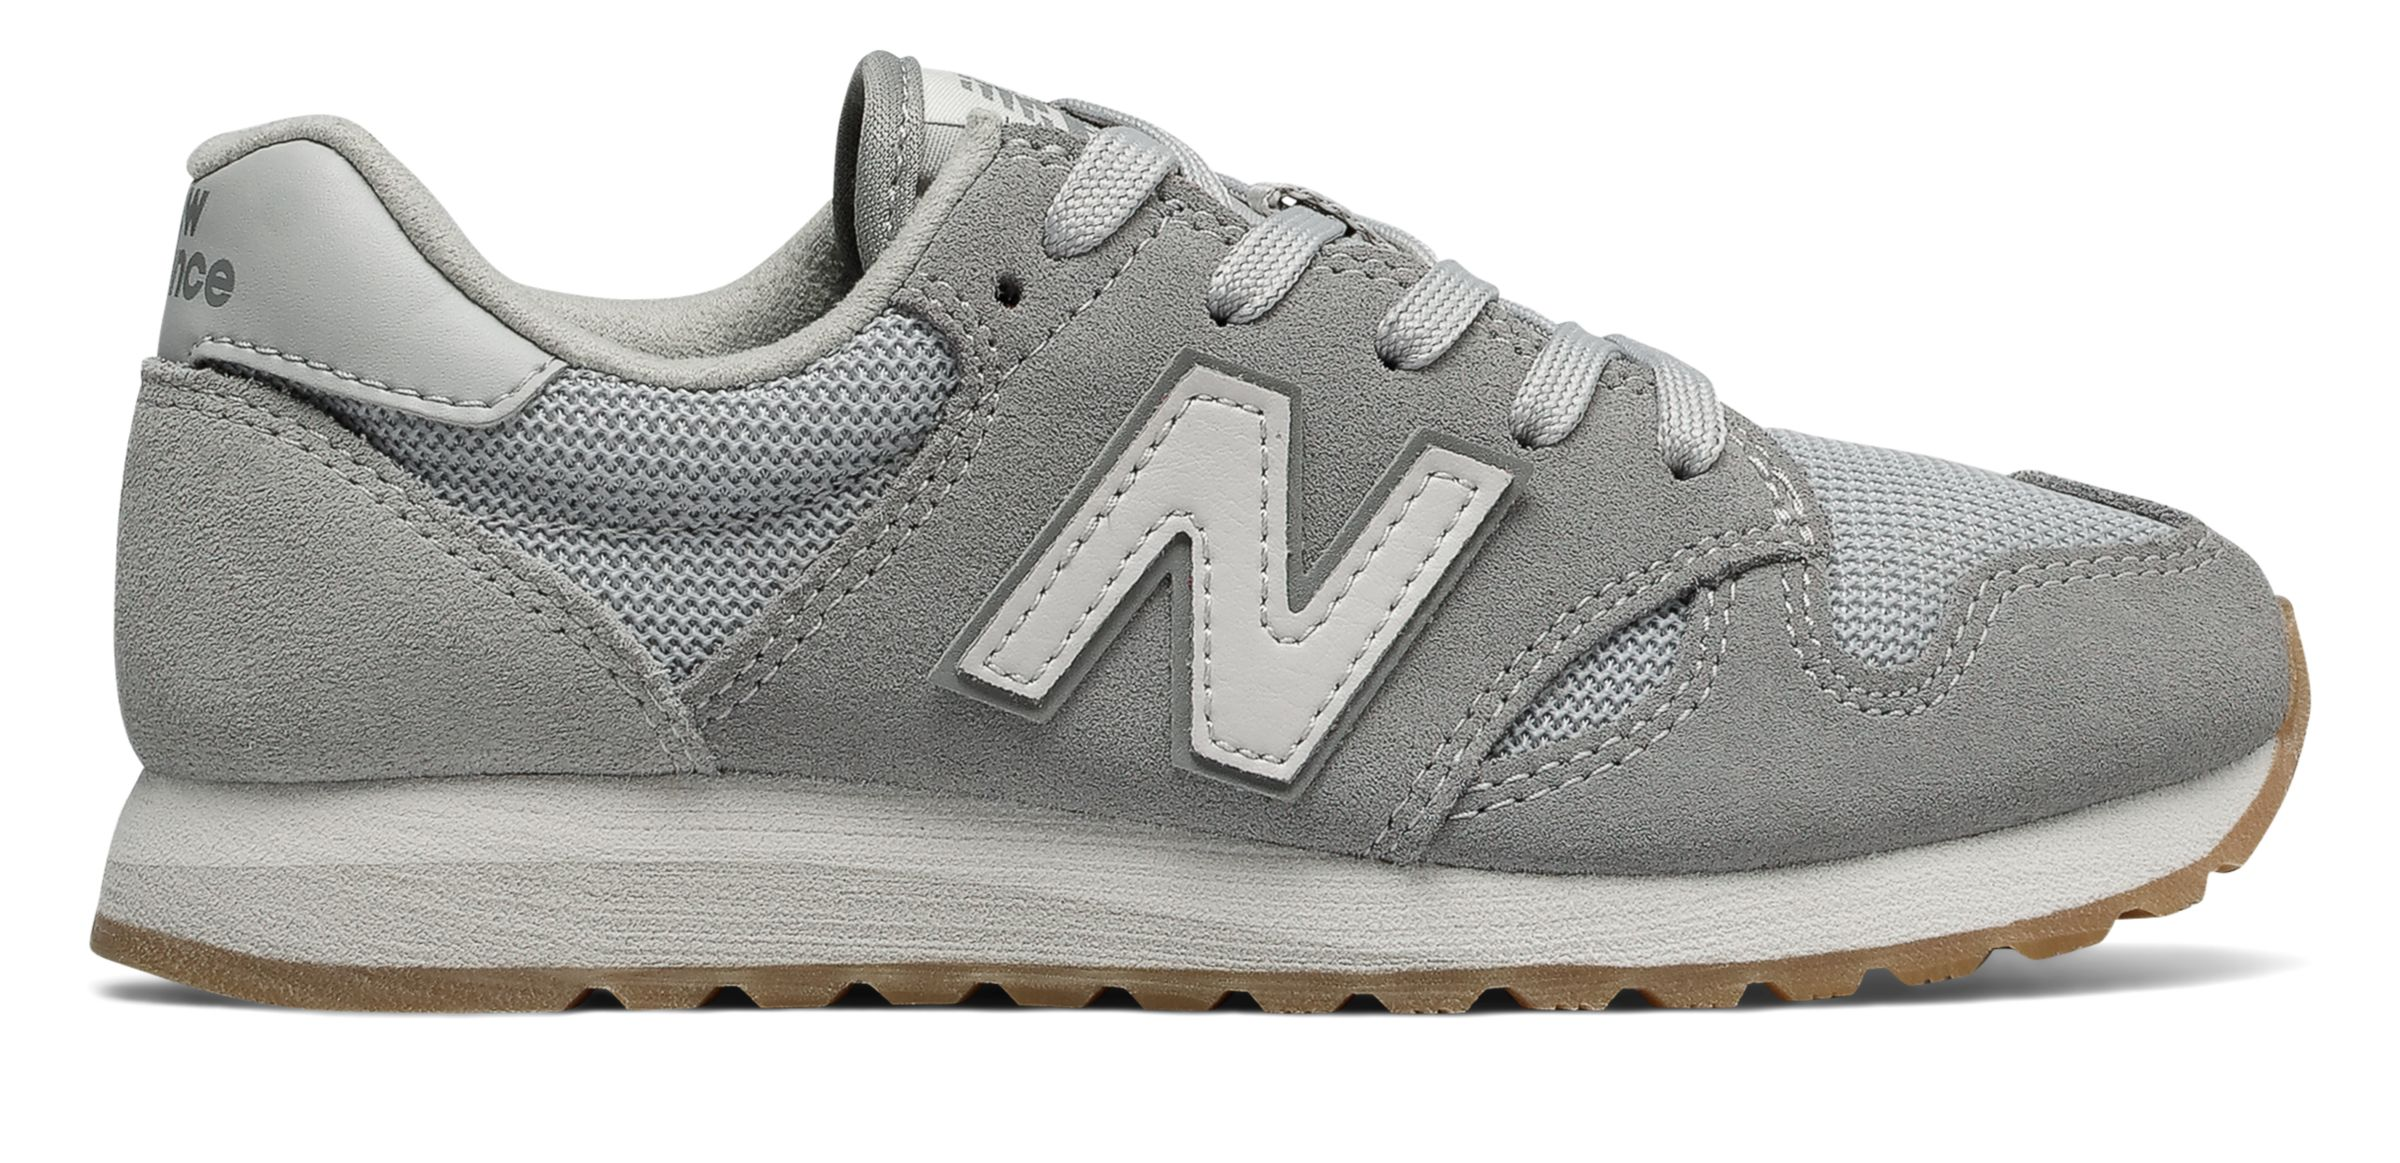 NB 520 New Balance, Grey with White